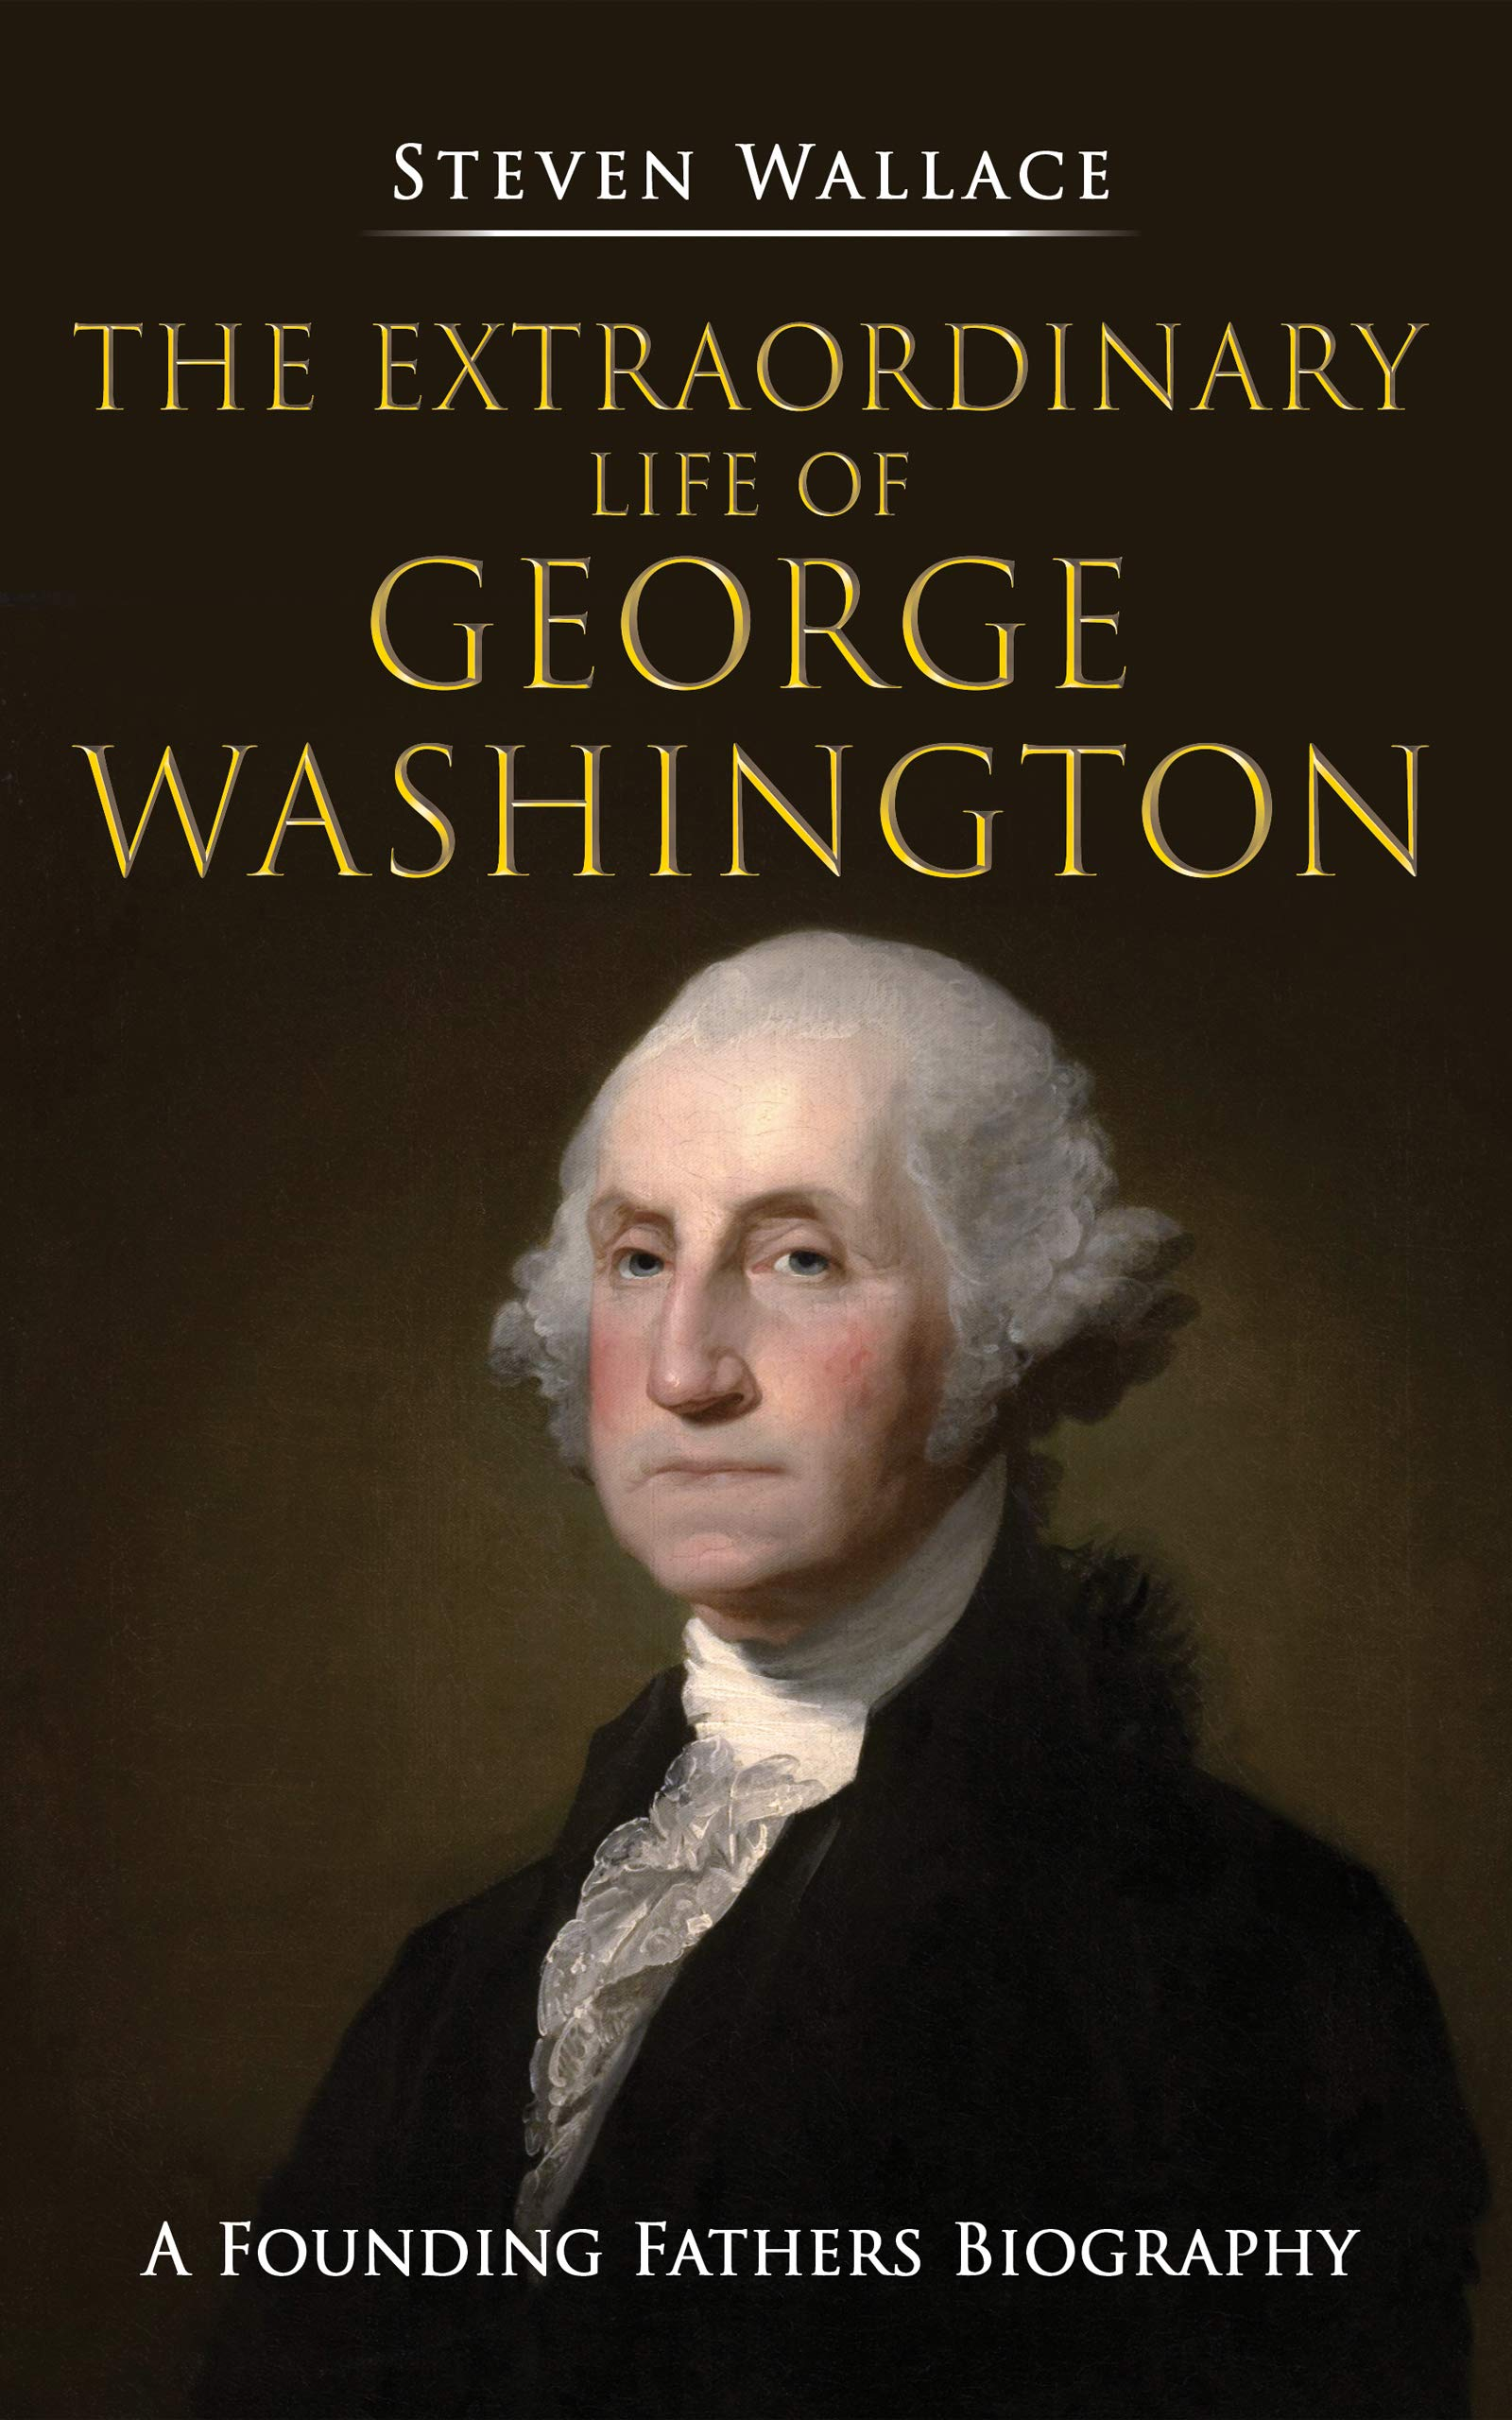 The Extraordinary Life of George Washington: A Founding Fathers Biography